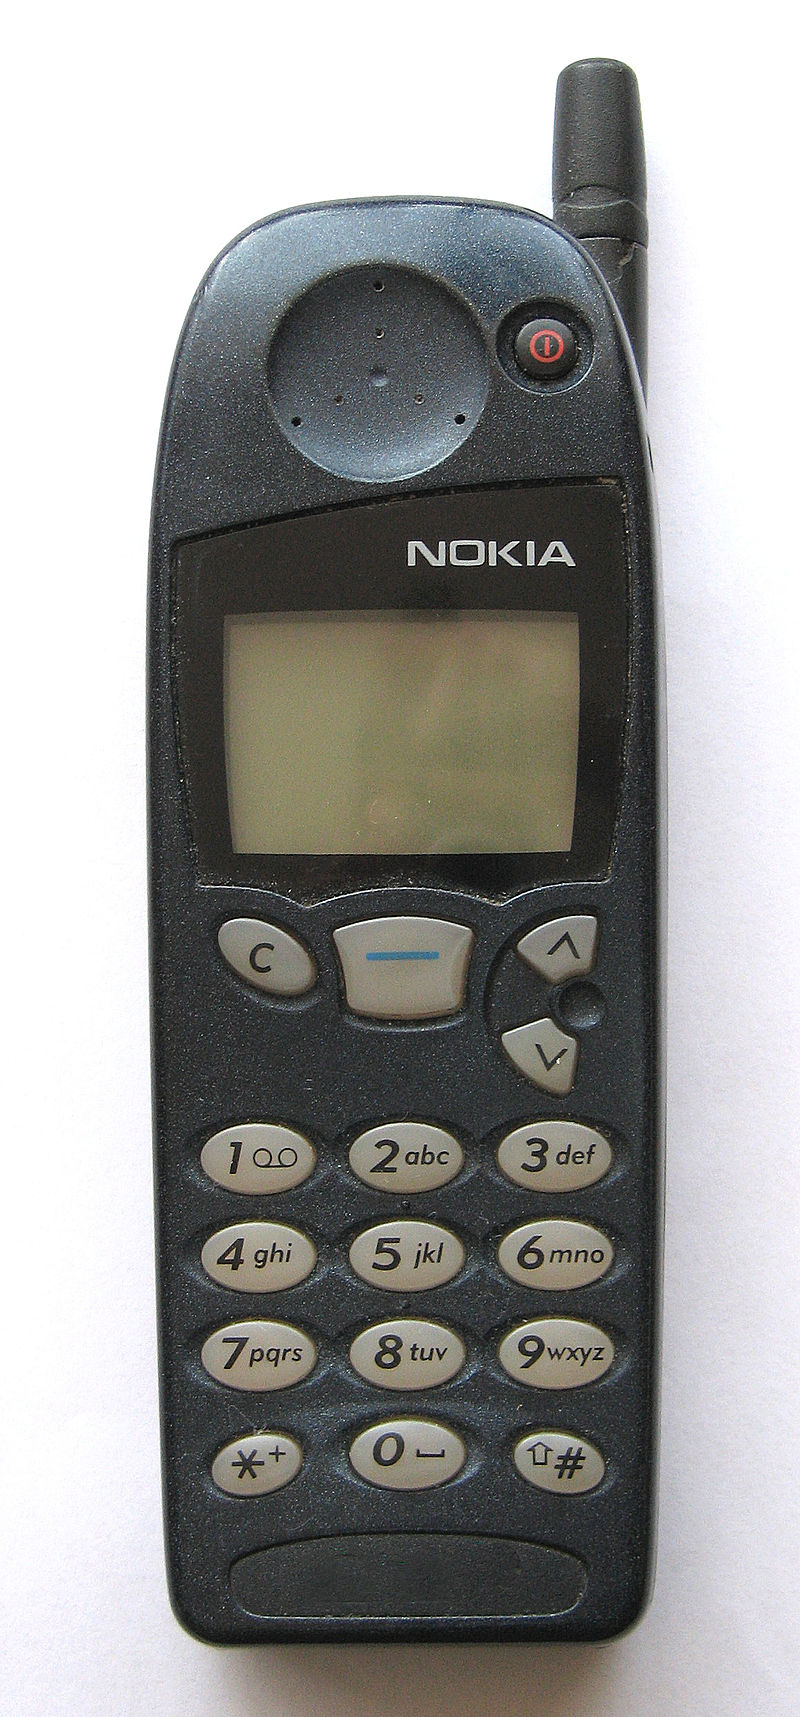 Nokia cell phone